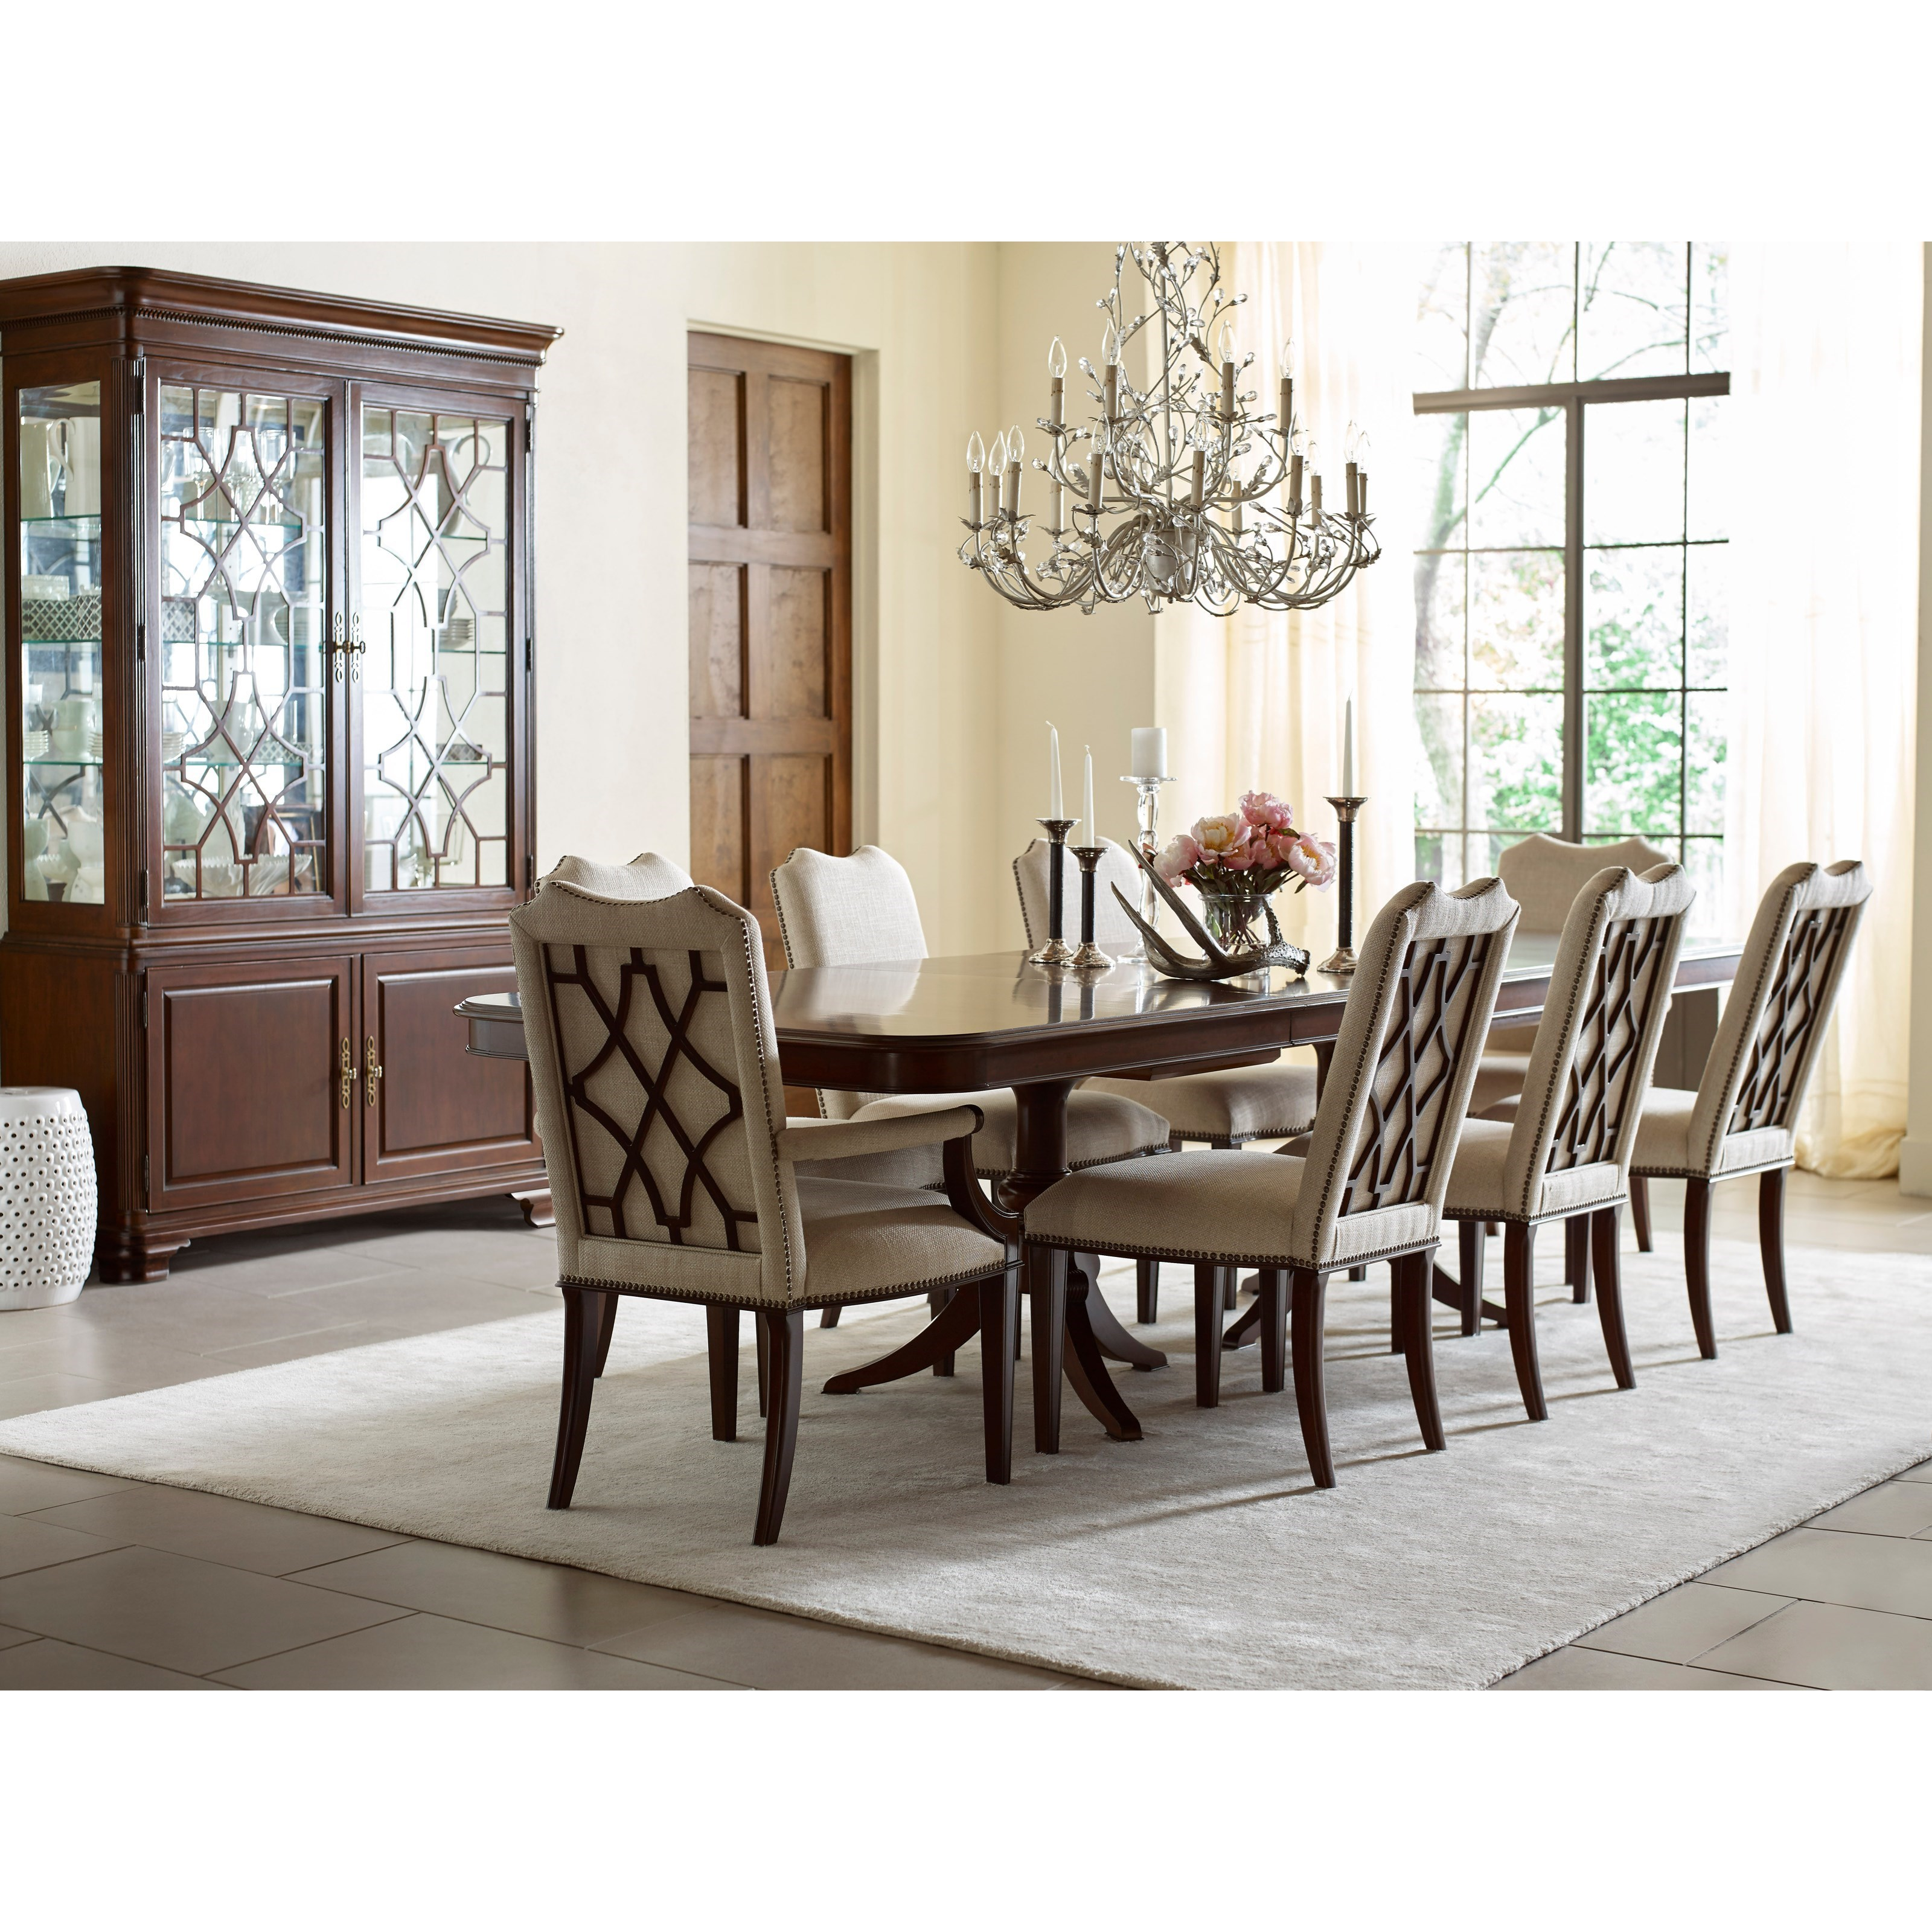 Hadleigh Formal Dining Room Group by Kincaid Furniture at Northeast Factory Direct